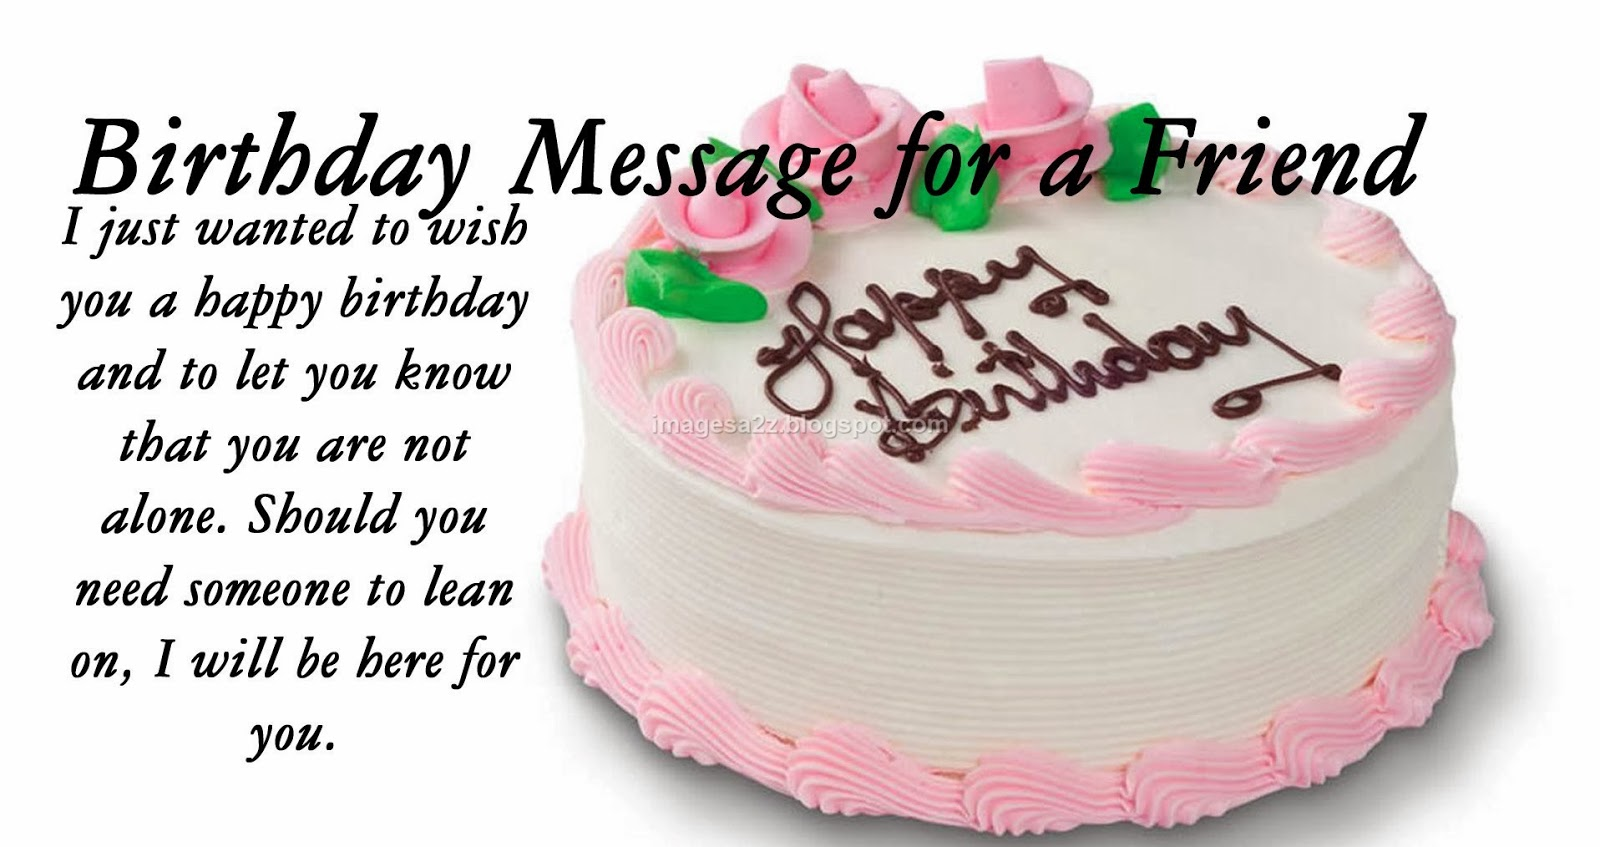 birthday picture messages free download ; 79fe3e6eb791f5215a549351690fd6f7